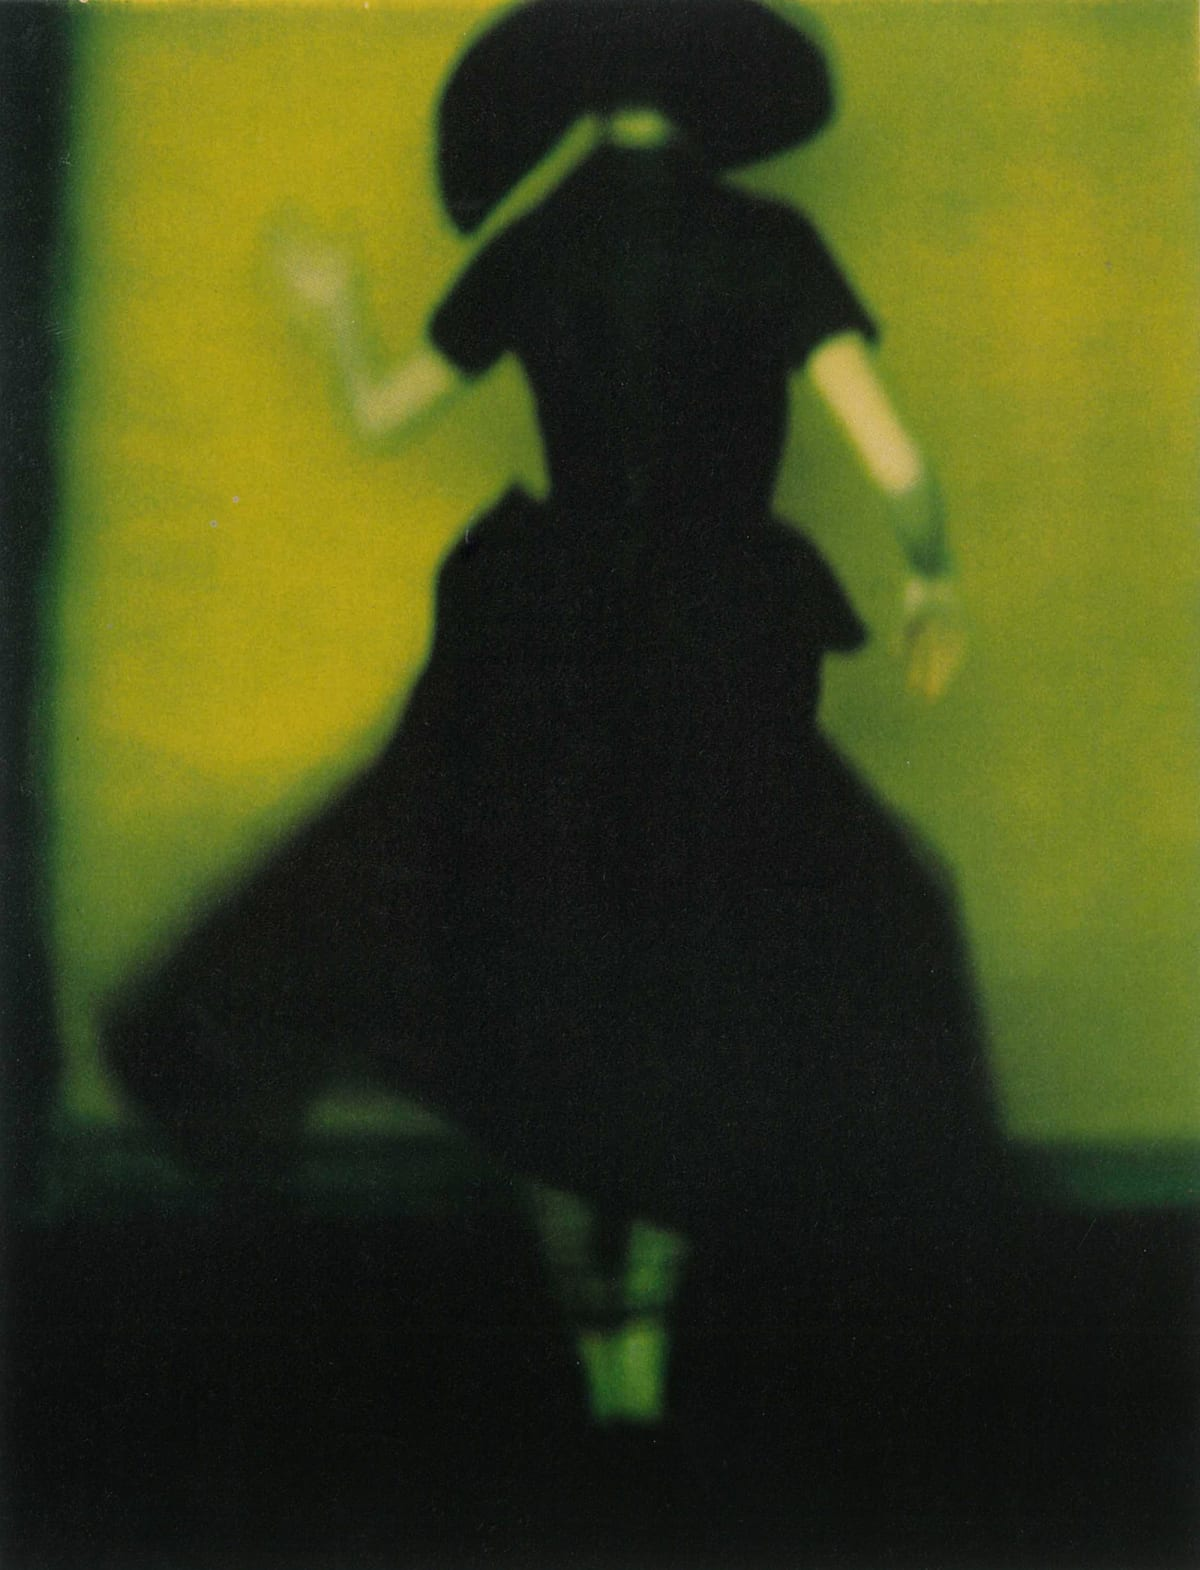 Sarah Moon Fashion 9, Yohji Yamamoto, 1997 Fresson Print Image Dimensions: 17 x 22 inches Paper Dimensions: 22 x 29 inches Matted Dimensions: 24 x 30 inches Edition 13 of 15